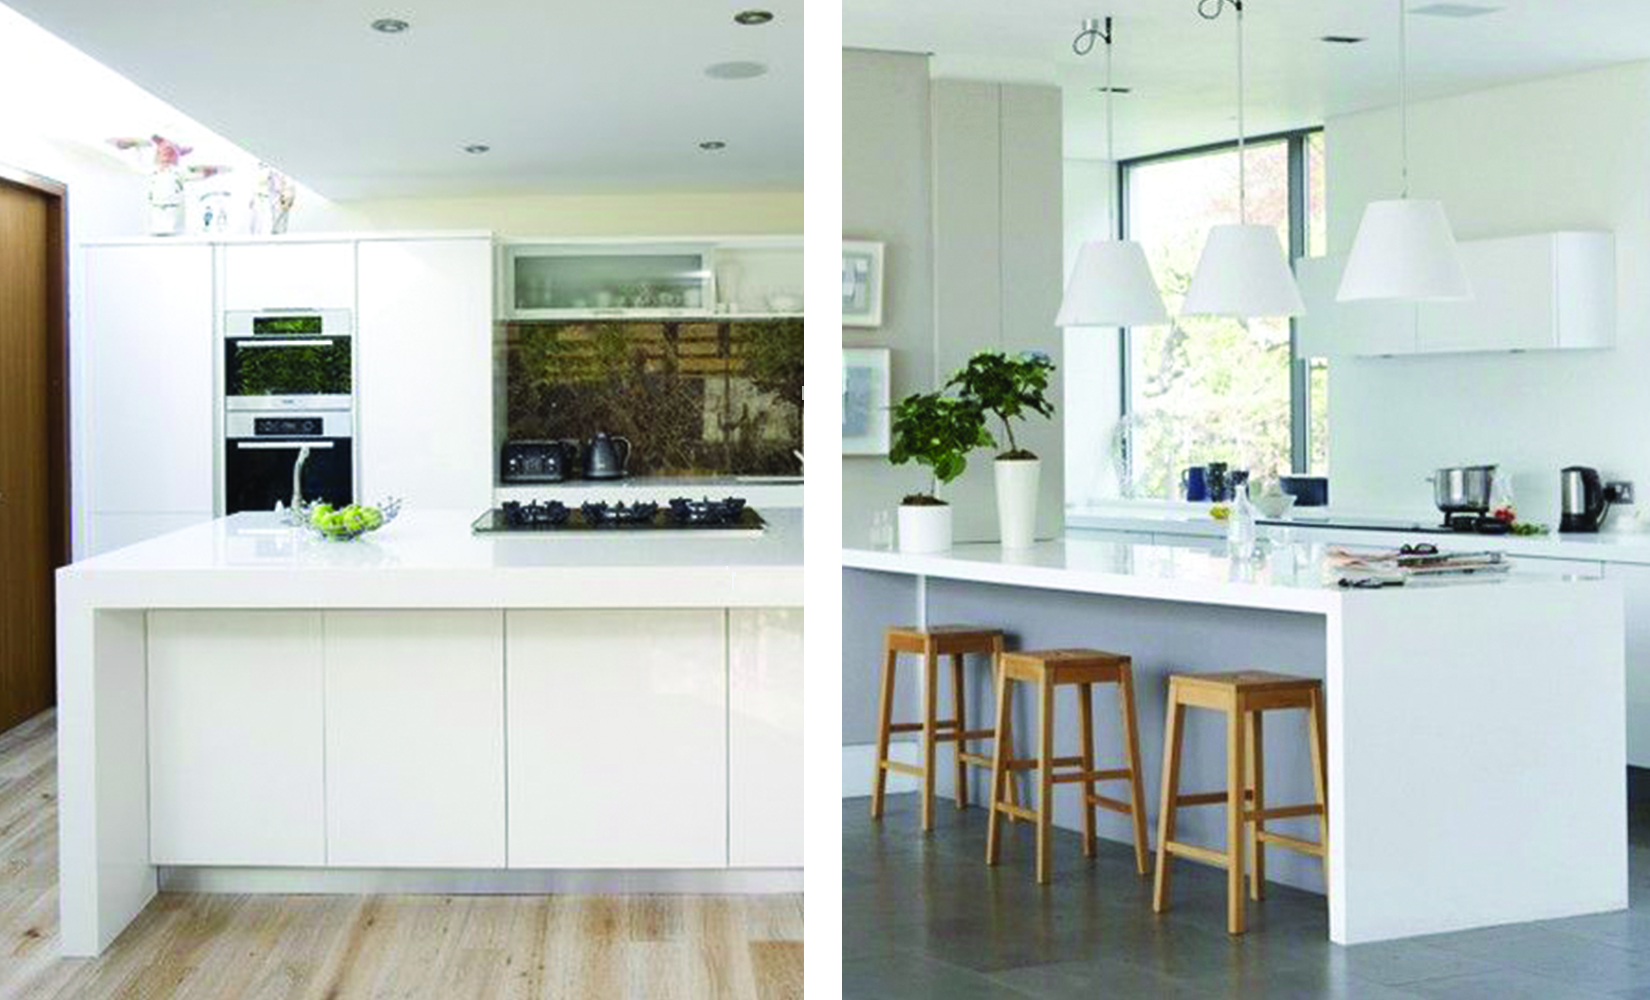 Kitchen design: Considerations for designing an island bench ...